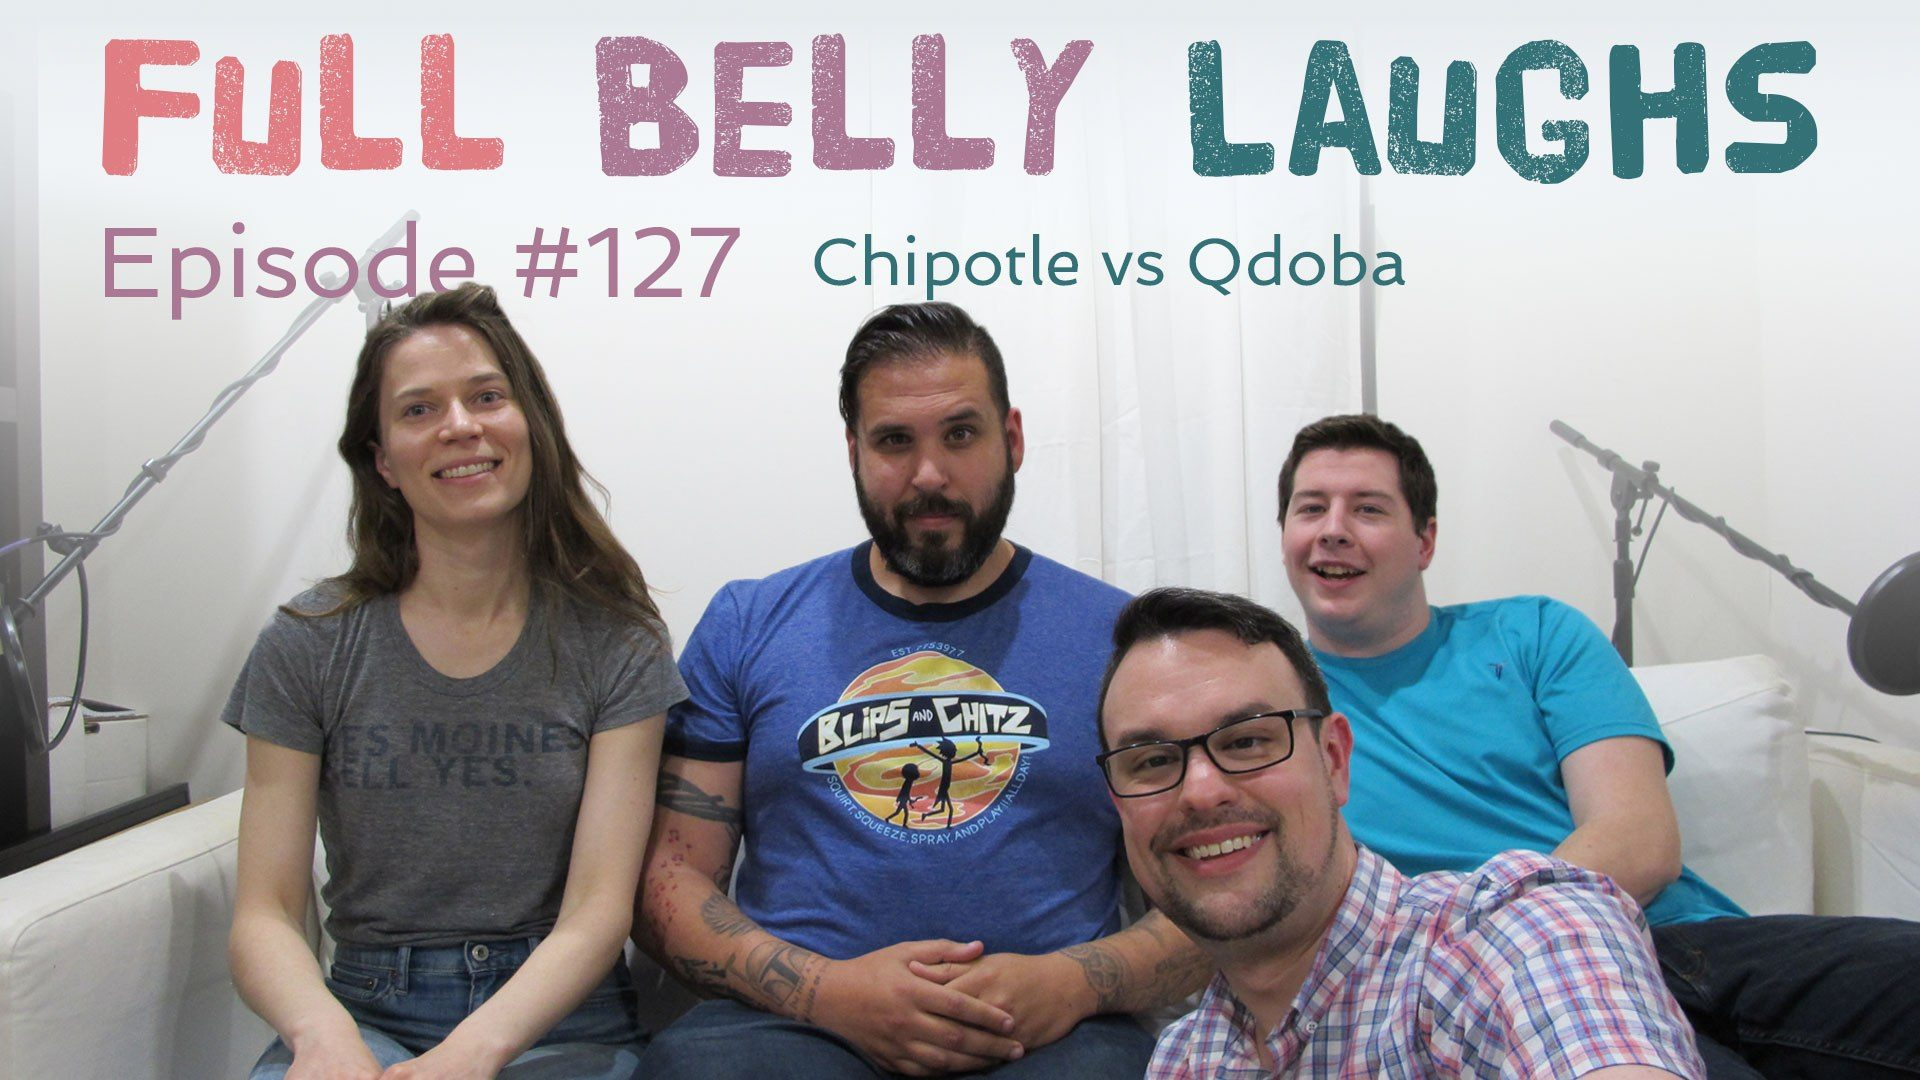 full belly laughs podcast episode 127 chipotle vs qdoba audio artwork